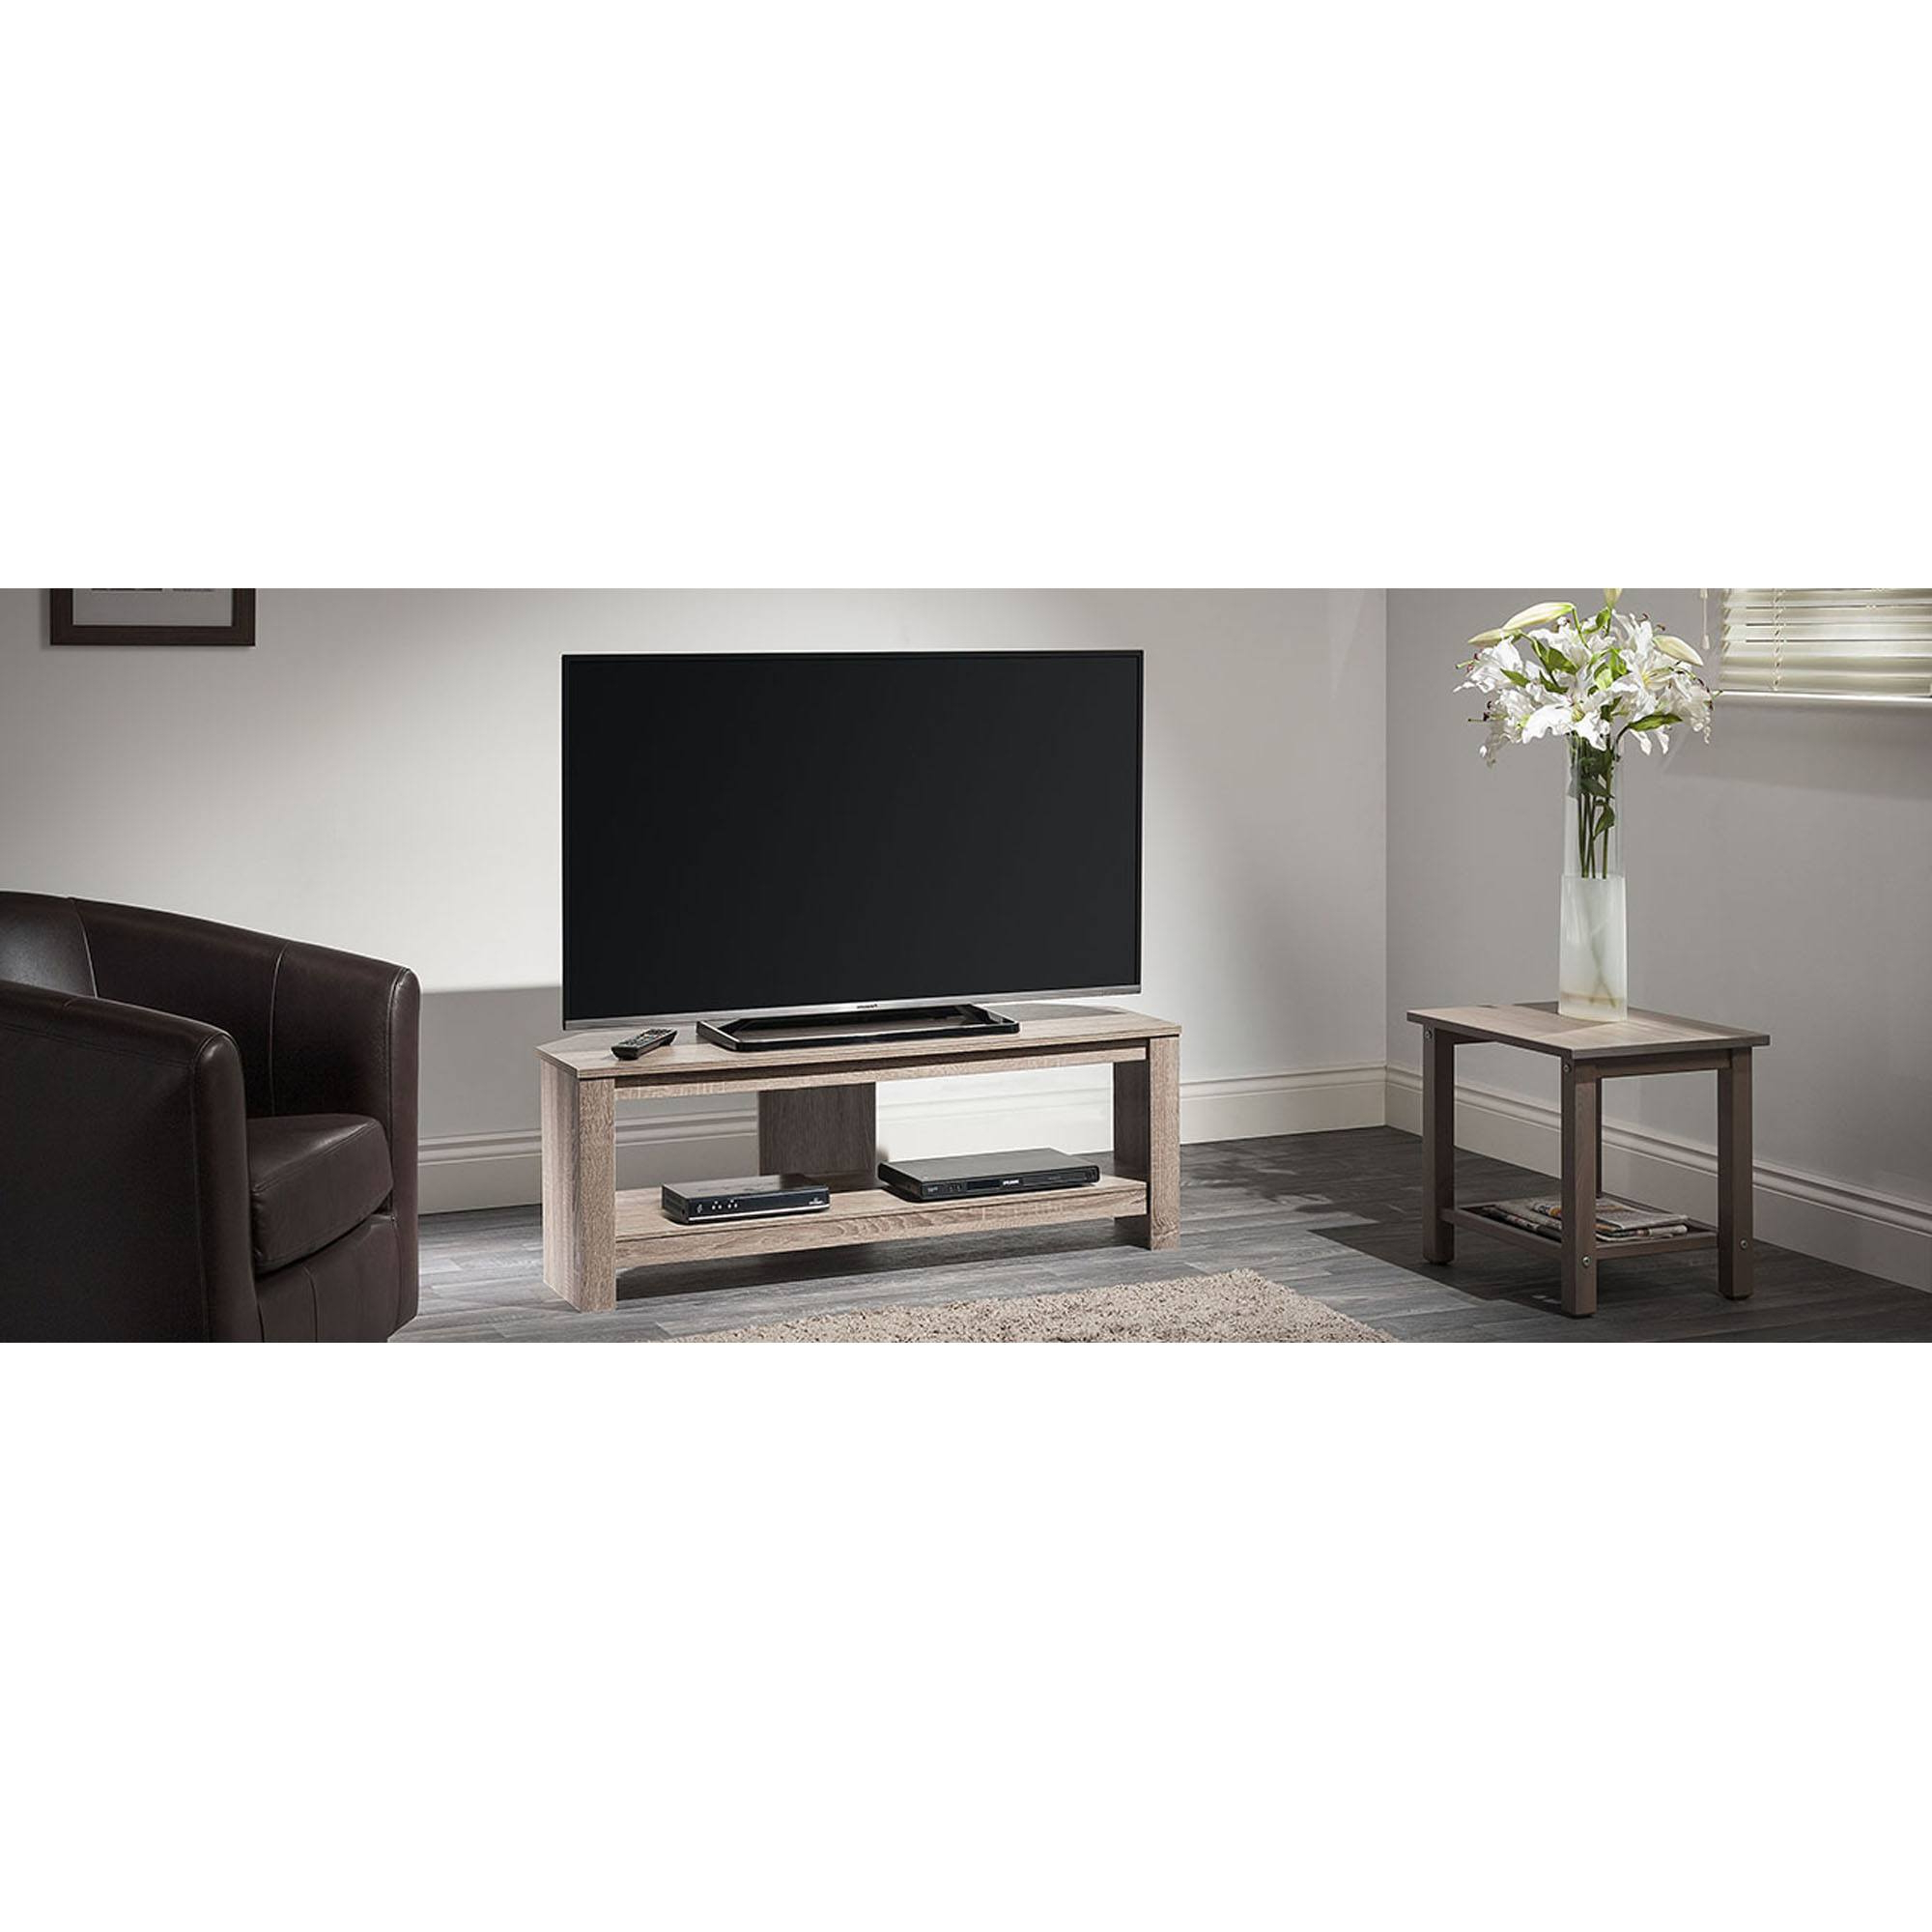 """Most Recent Tech Link Calibre Corner Tv Stand For Up To 55"""" (View 12 of 25)"""